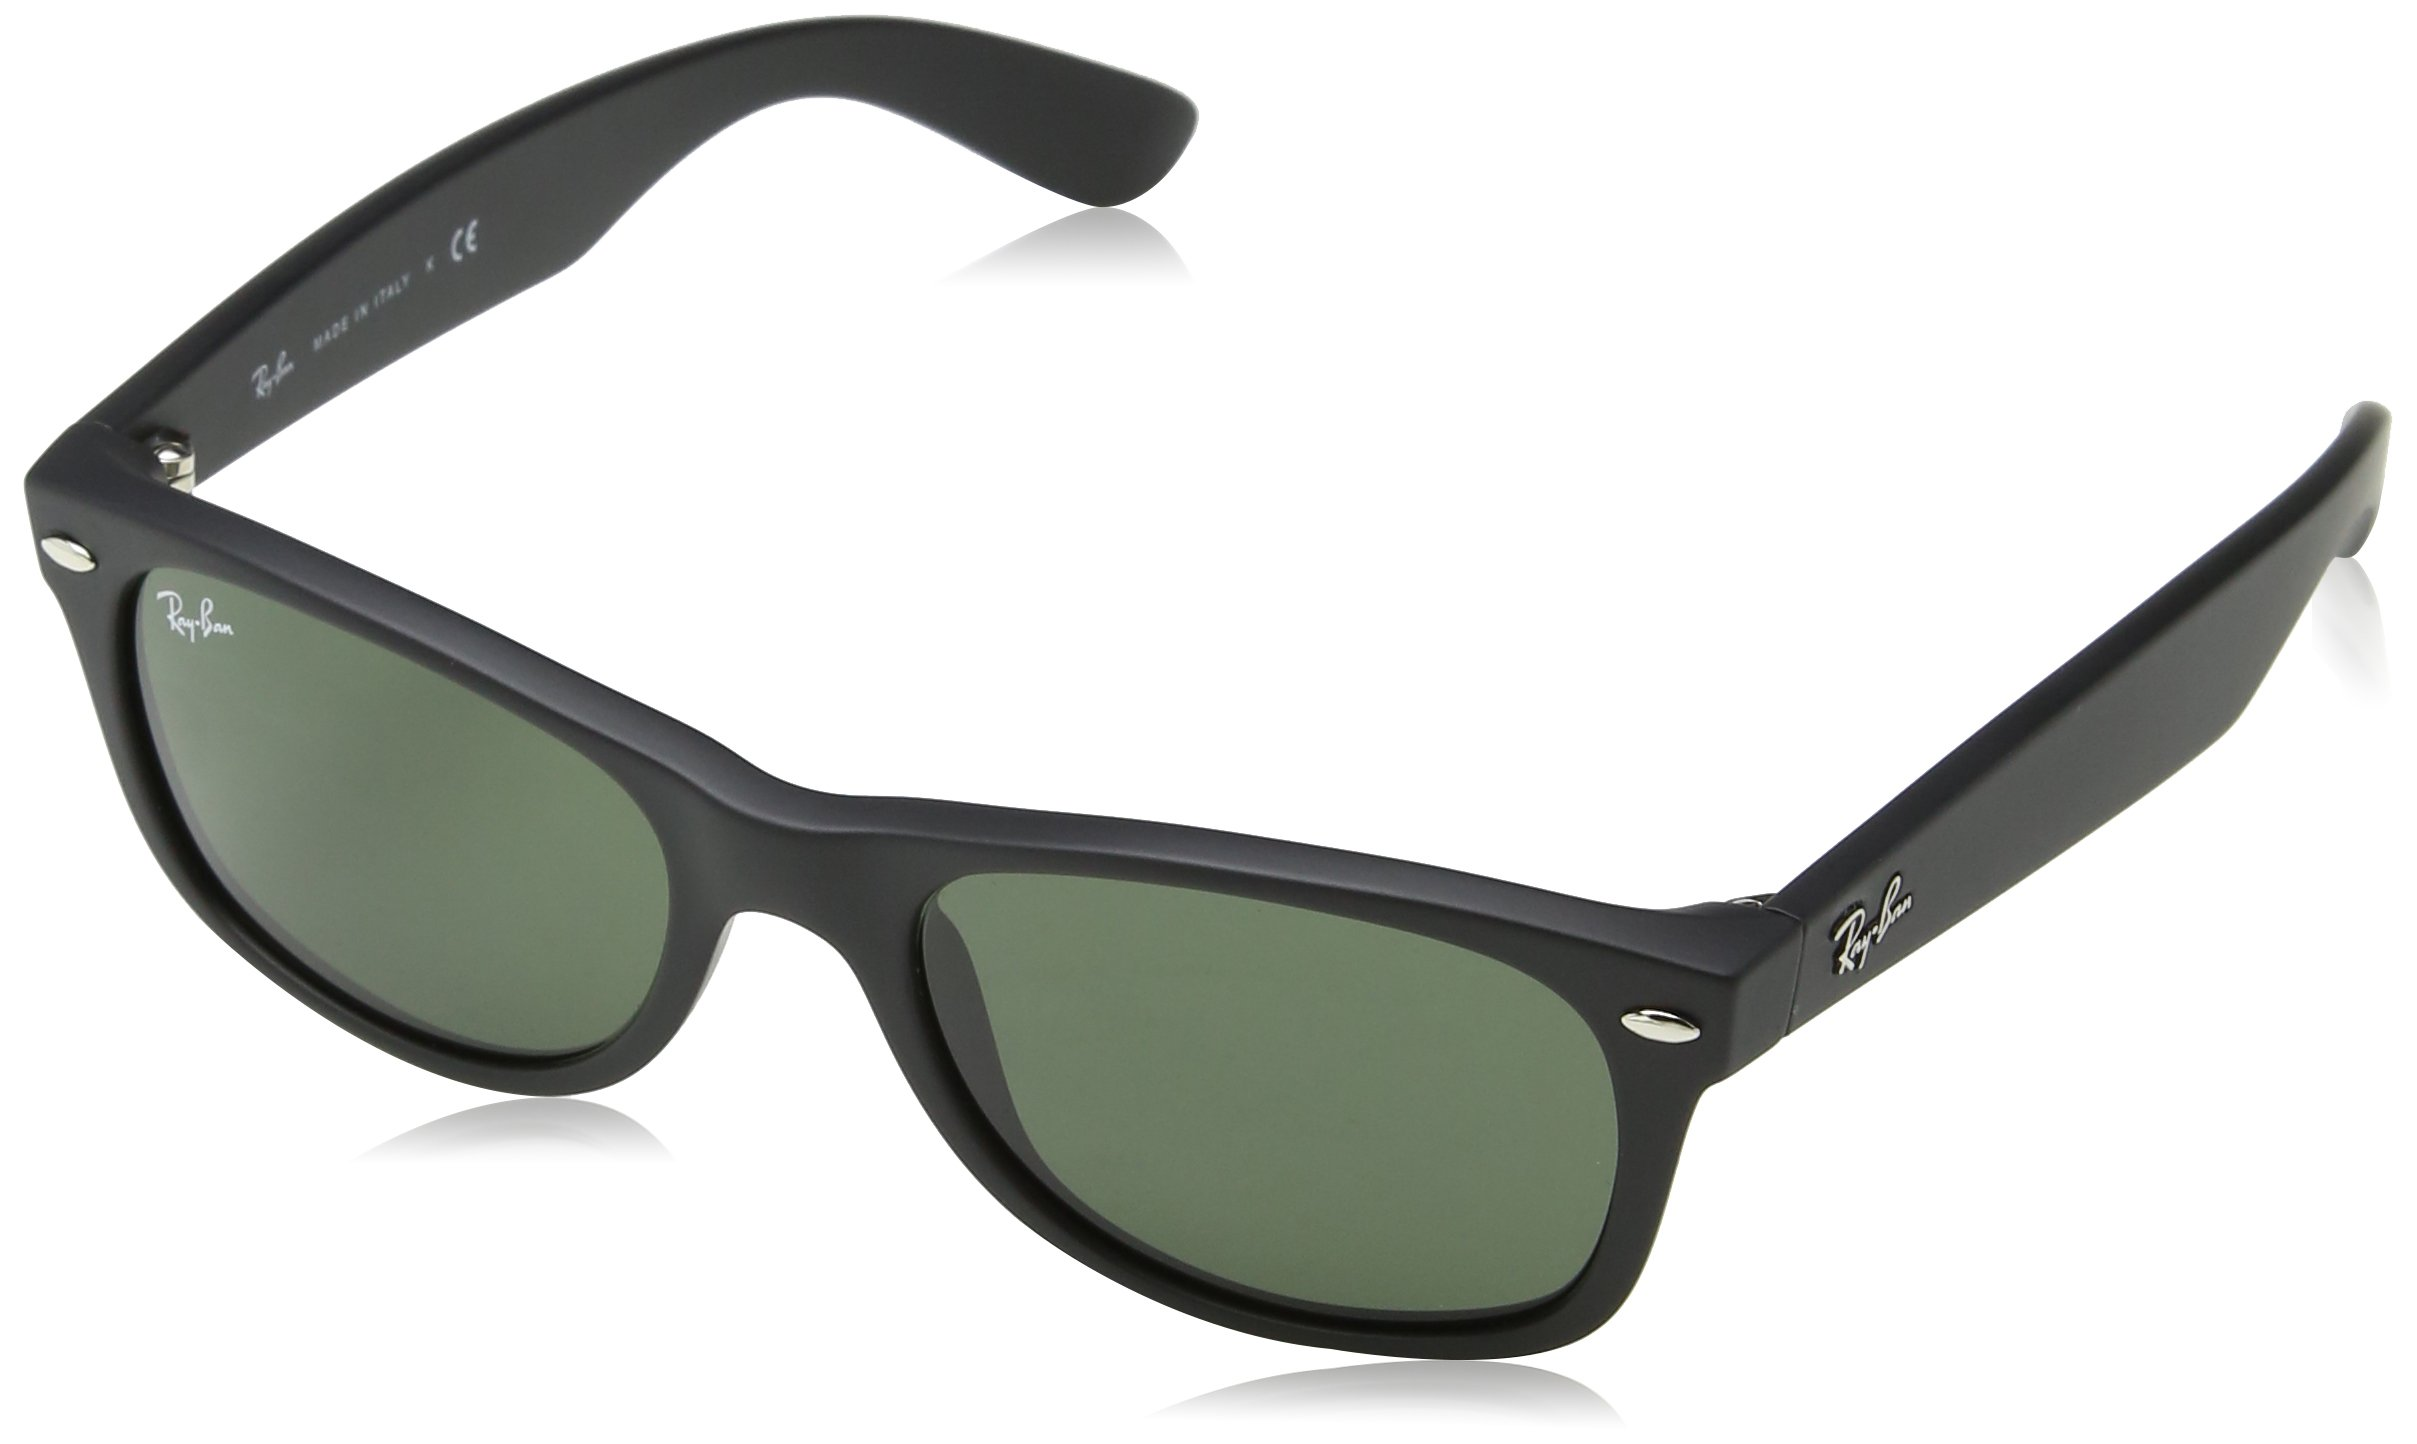 Ray-Ban RB2132 New Wayfarer Sunglasses, Black (622), 52 mm by Ray-Ban